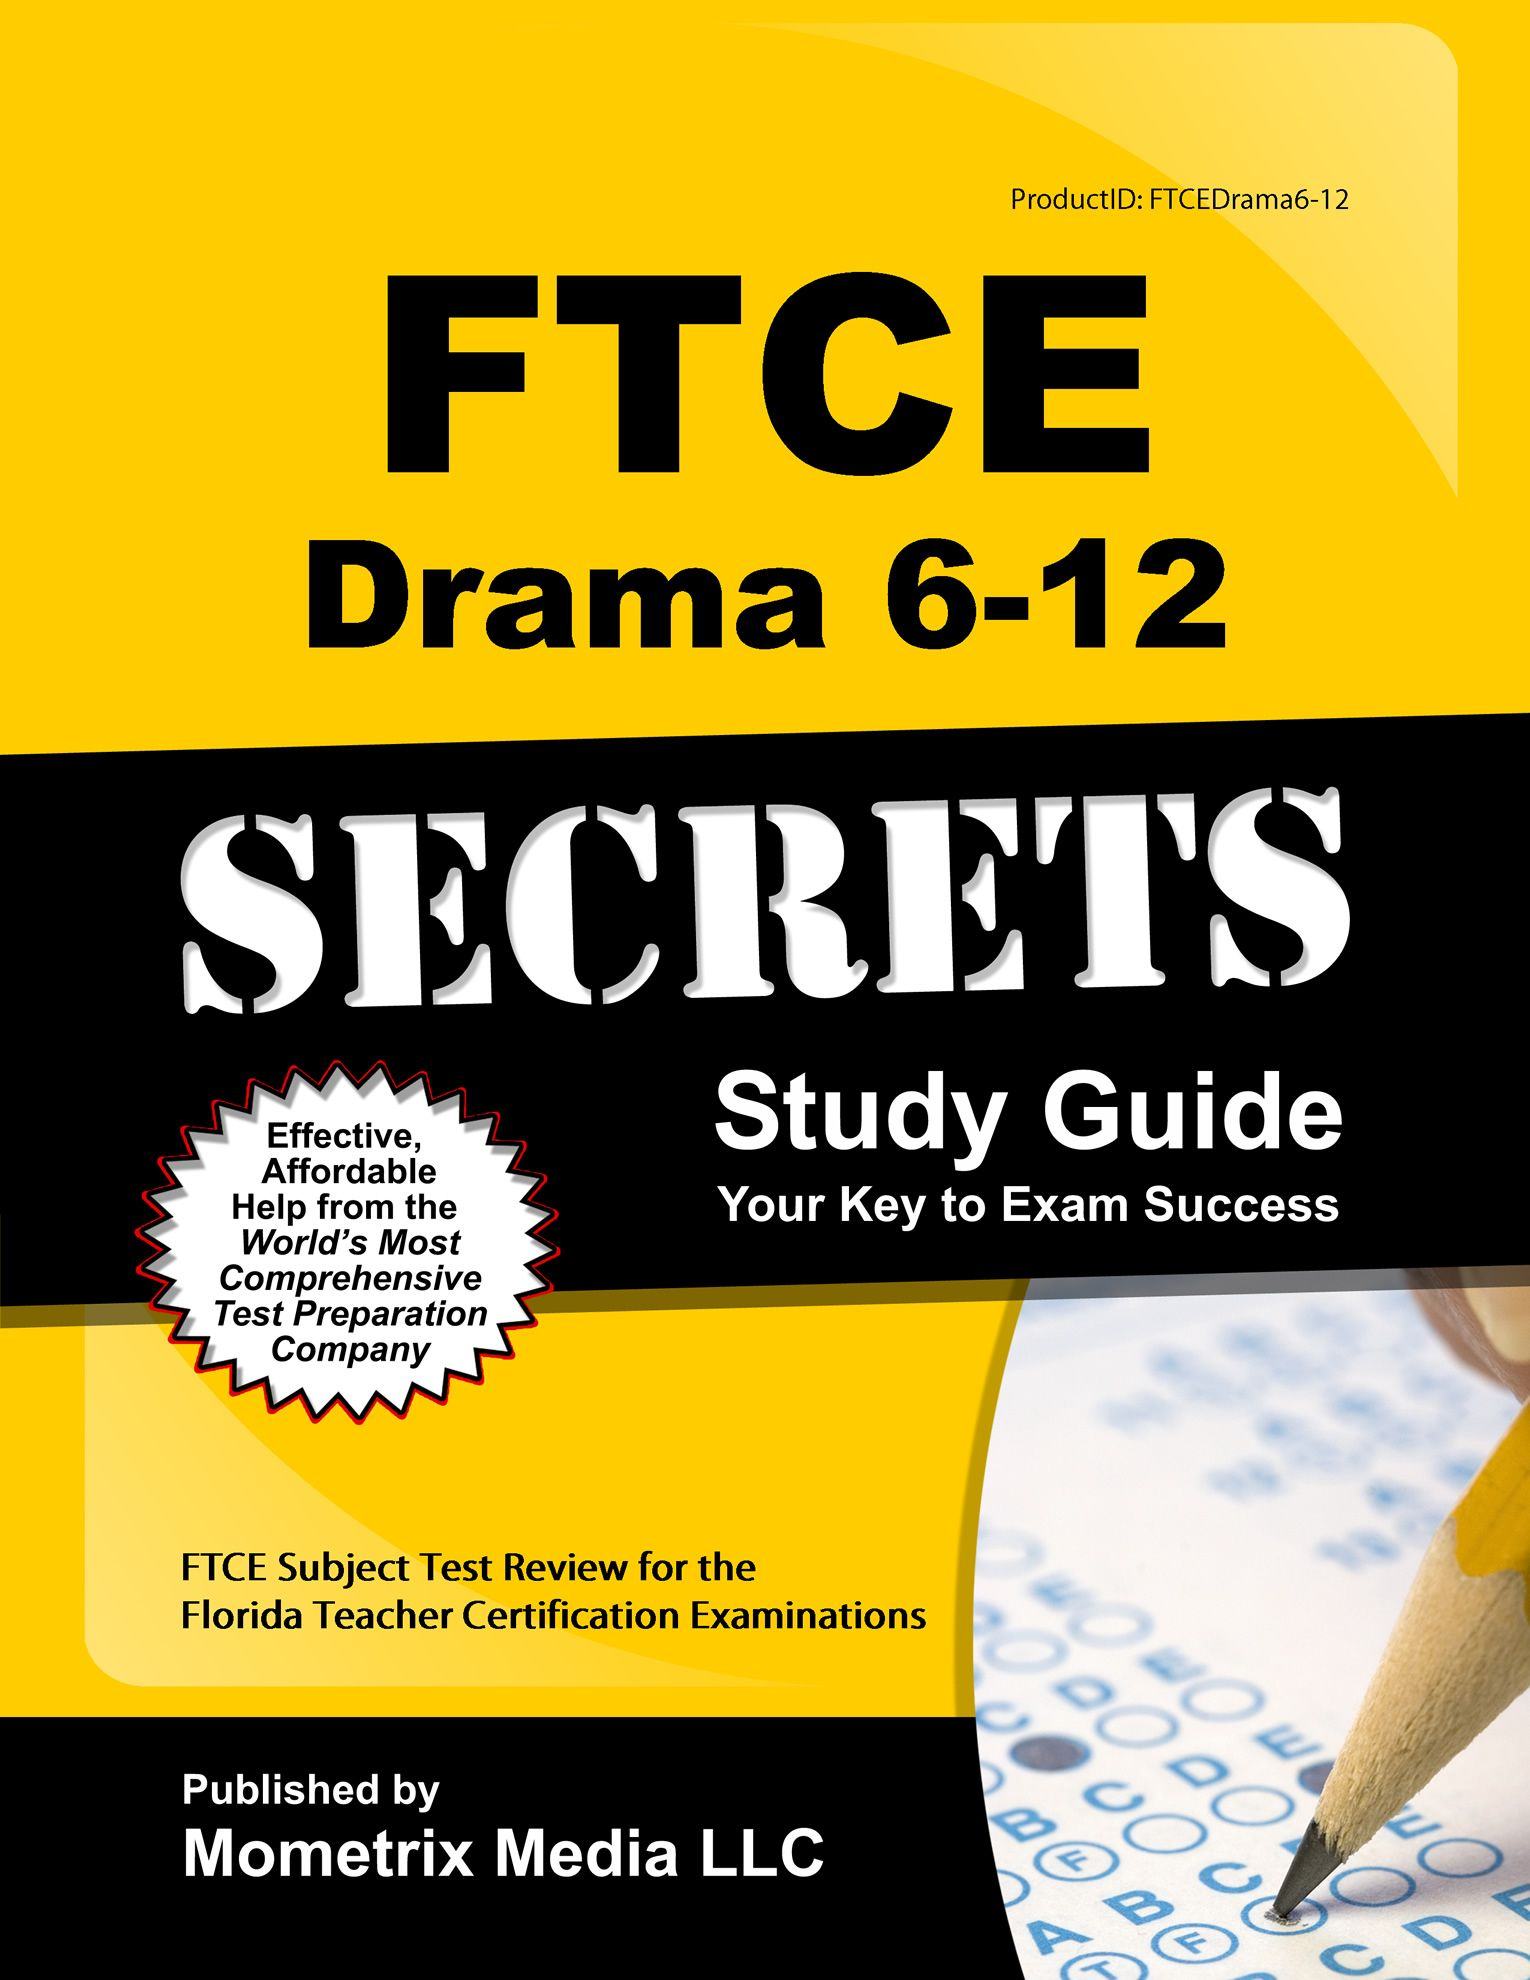 FTCE Drama 612 Study Guide